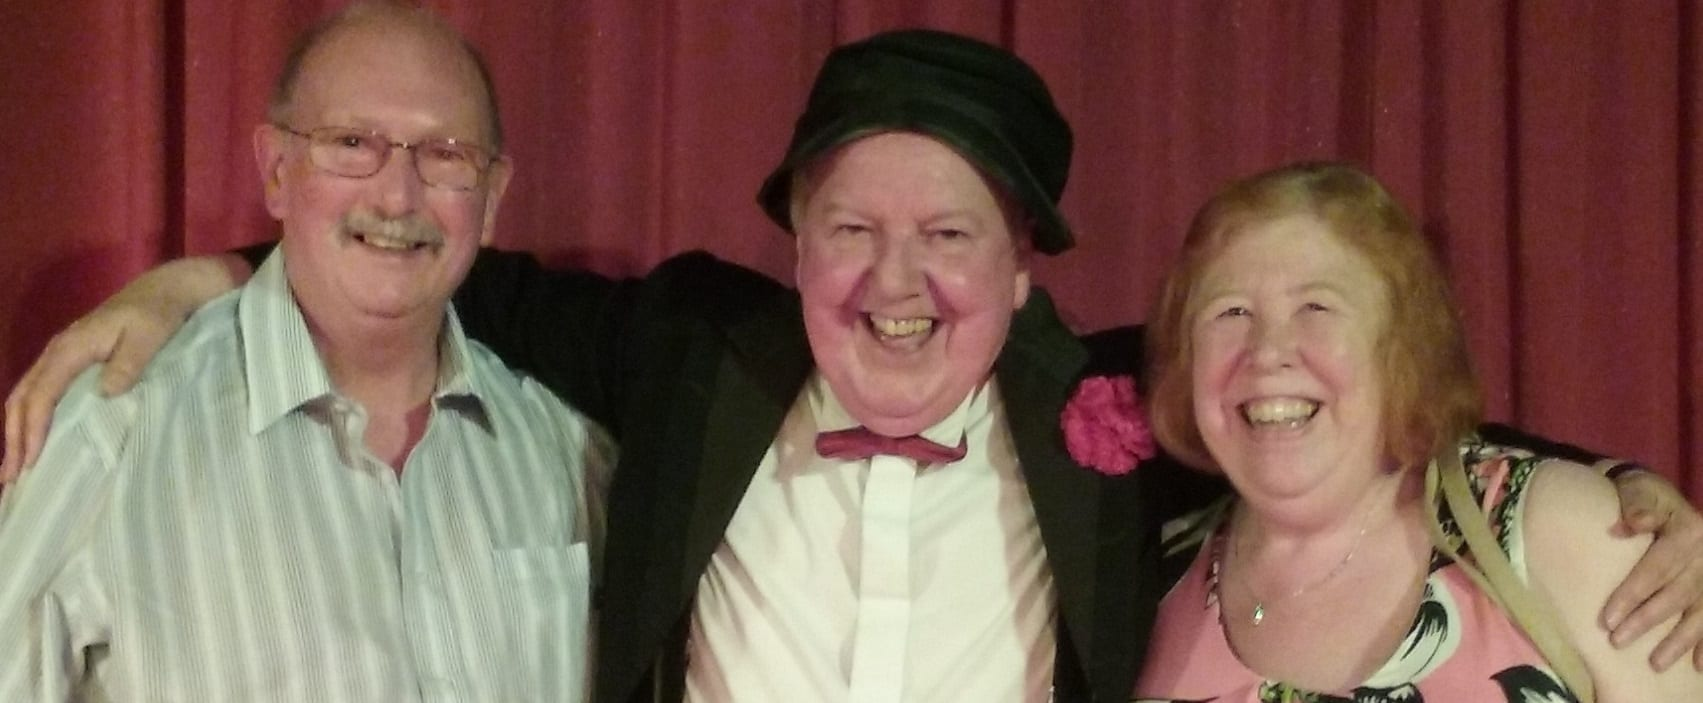 Jimmy Cricket with Ben and Linda, guests at the resort